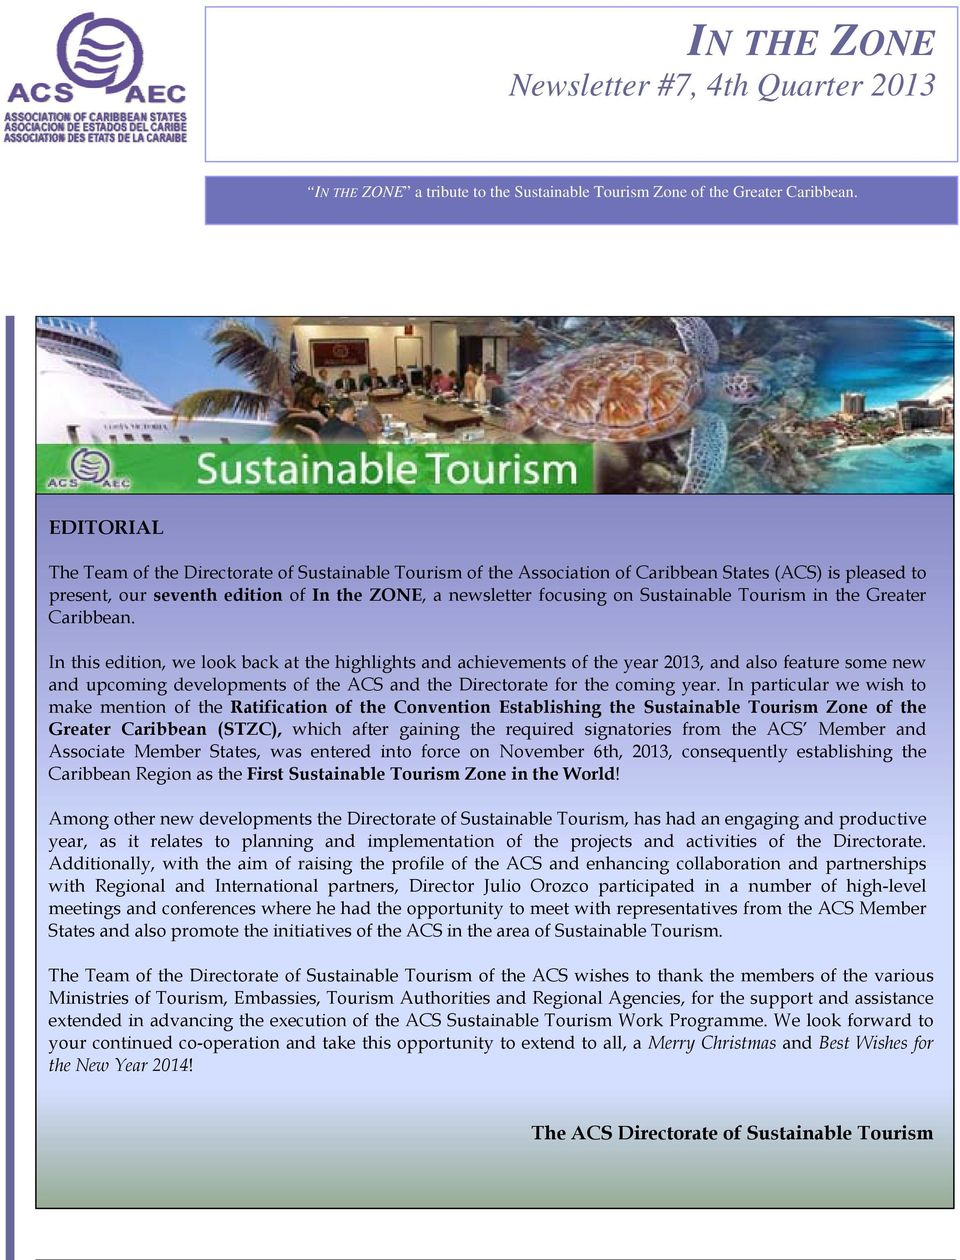 Sustainable Tourism in the Greater Caribbean.